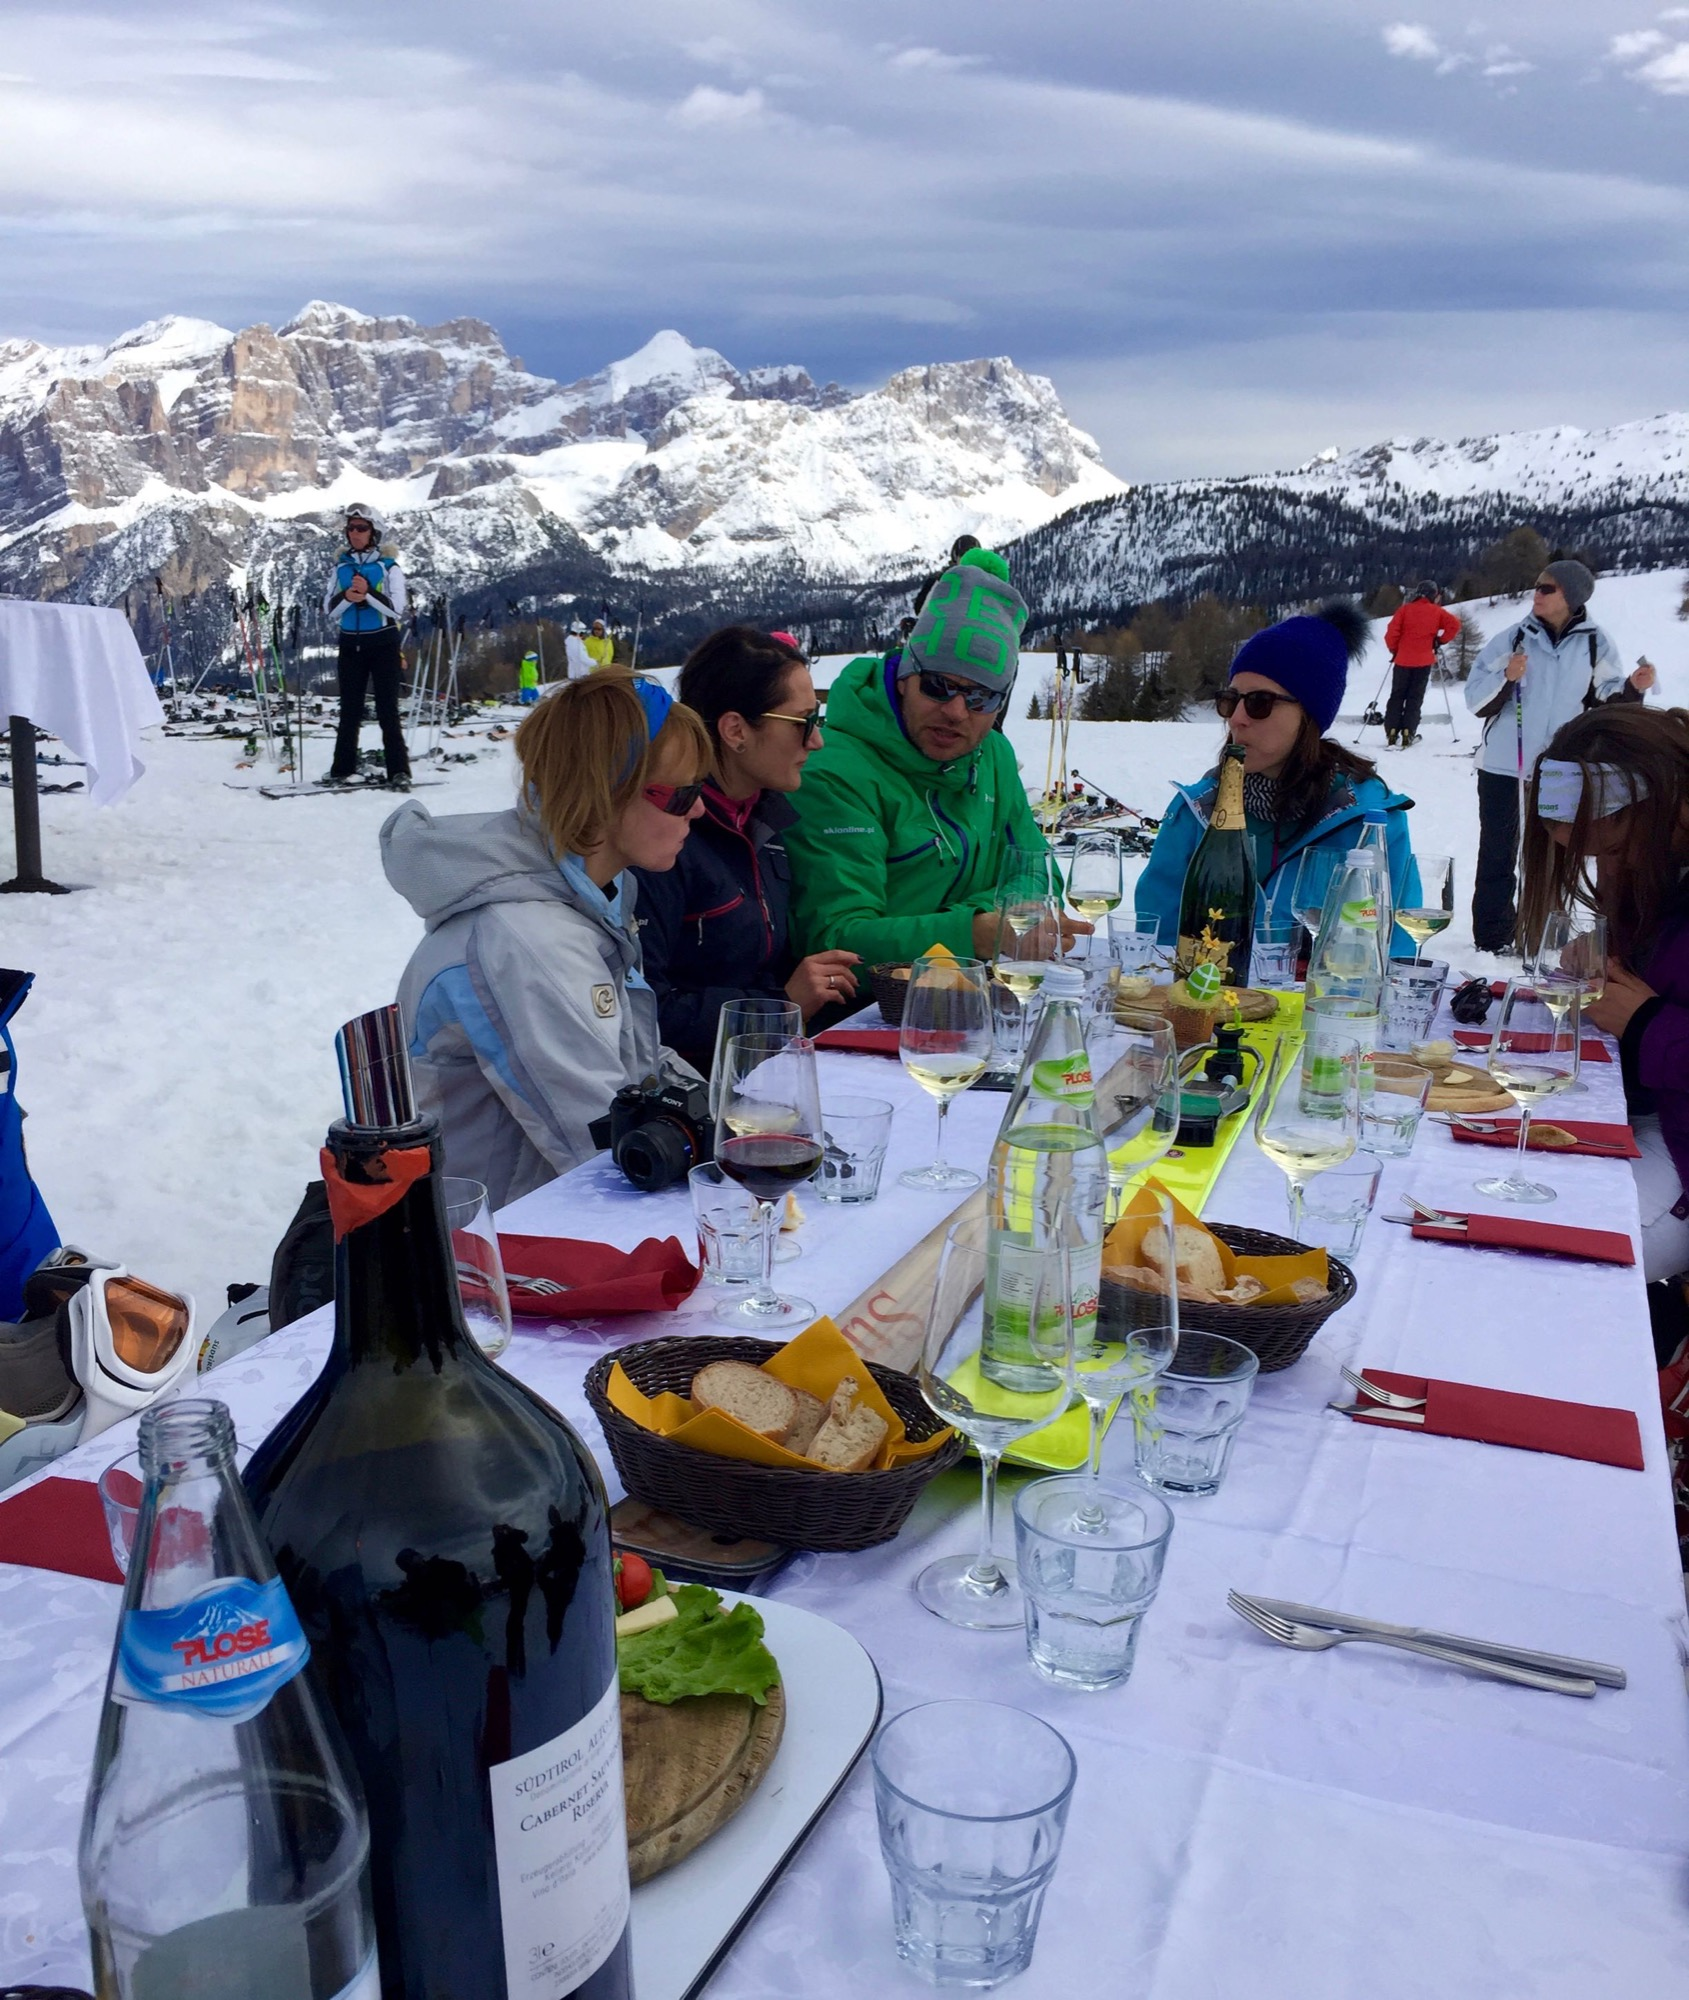 Wintersport wellness Zuid Tirol - 1 (1)